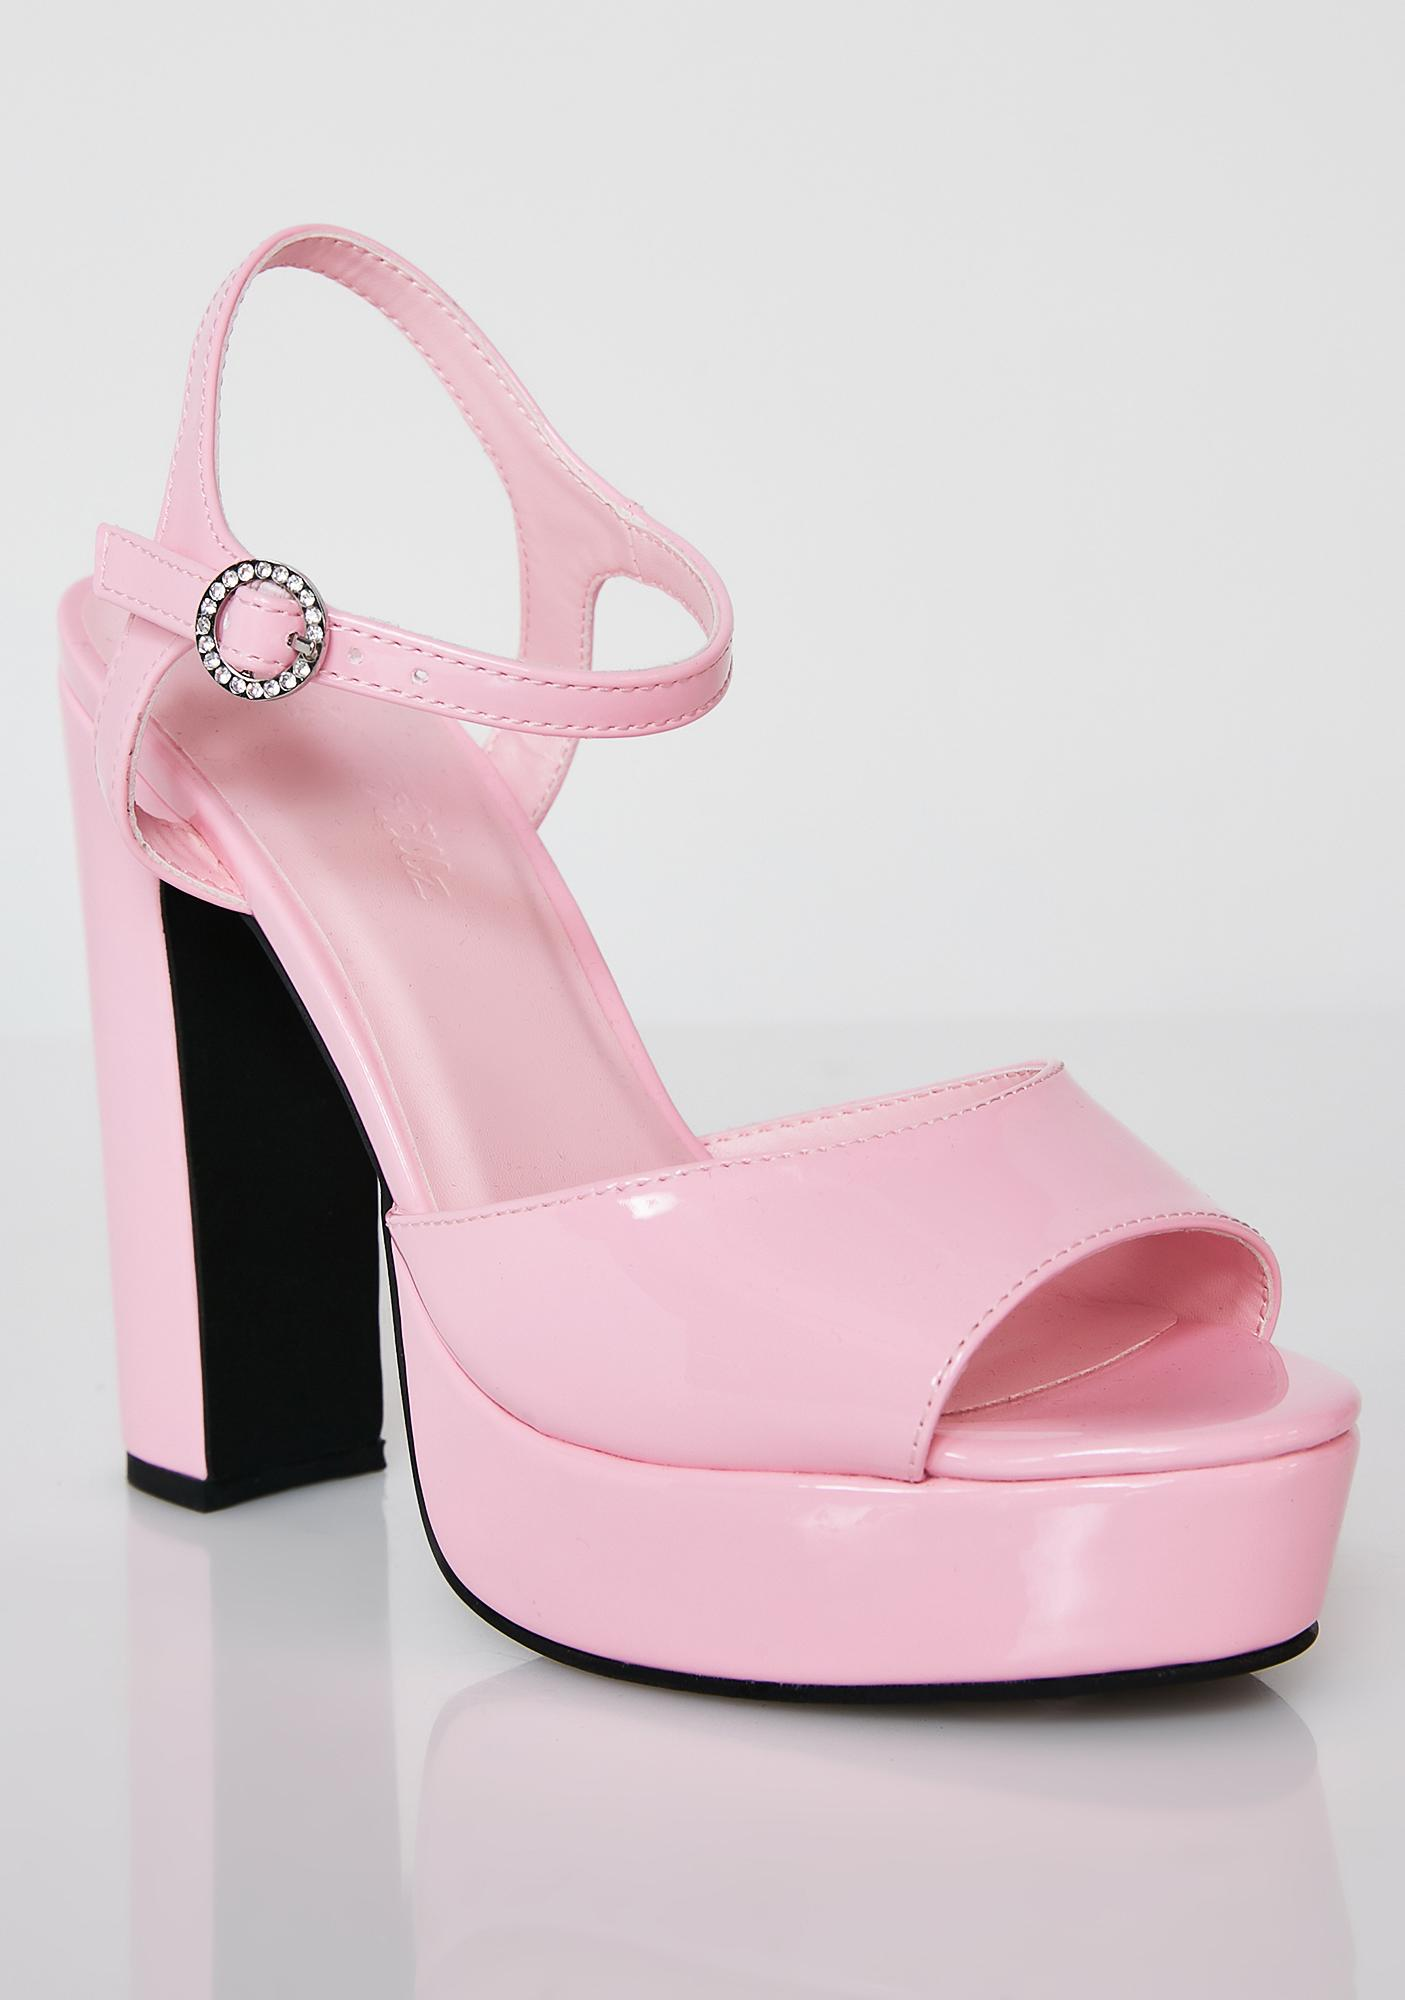 b979539d909d ... Sugar Thrillz Pretty Princess Platform Heels